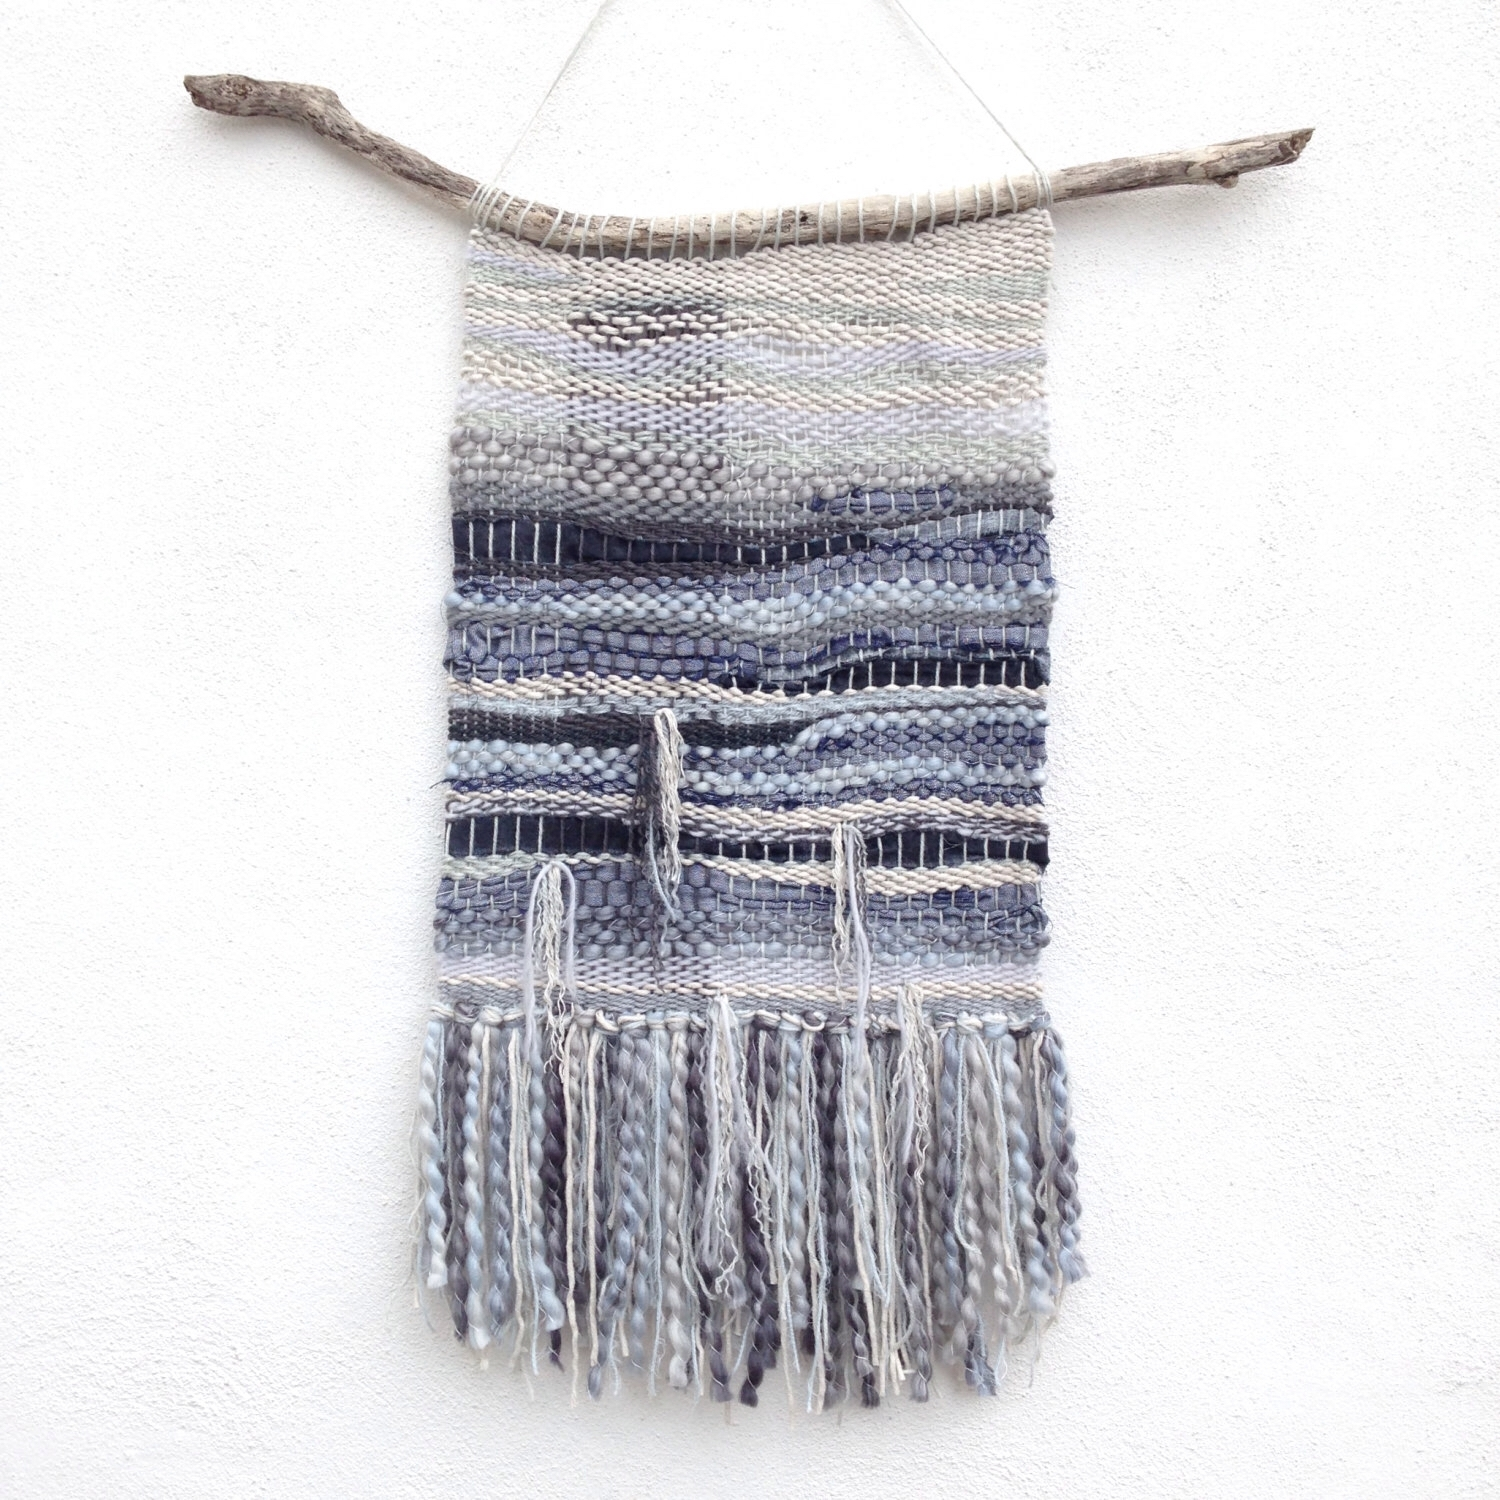 Woven Wall Hanging Weaving – Wall Artjungleandspritz On Etsy Throughout 2017 Woven Fabric Wall Art (View 15 of 15)